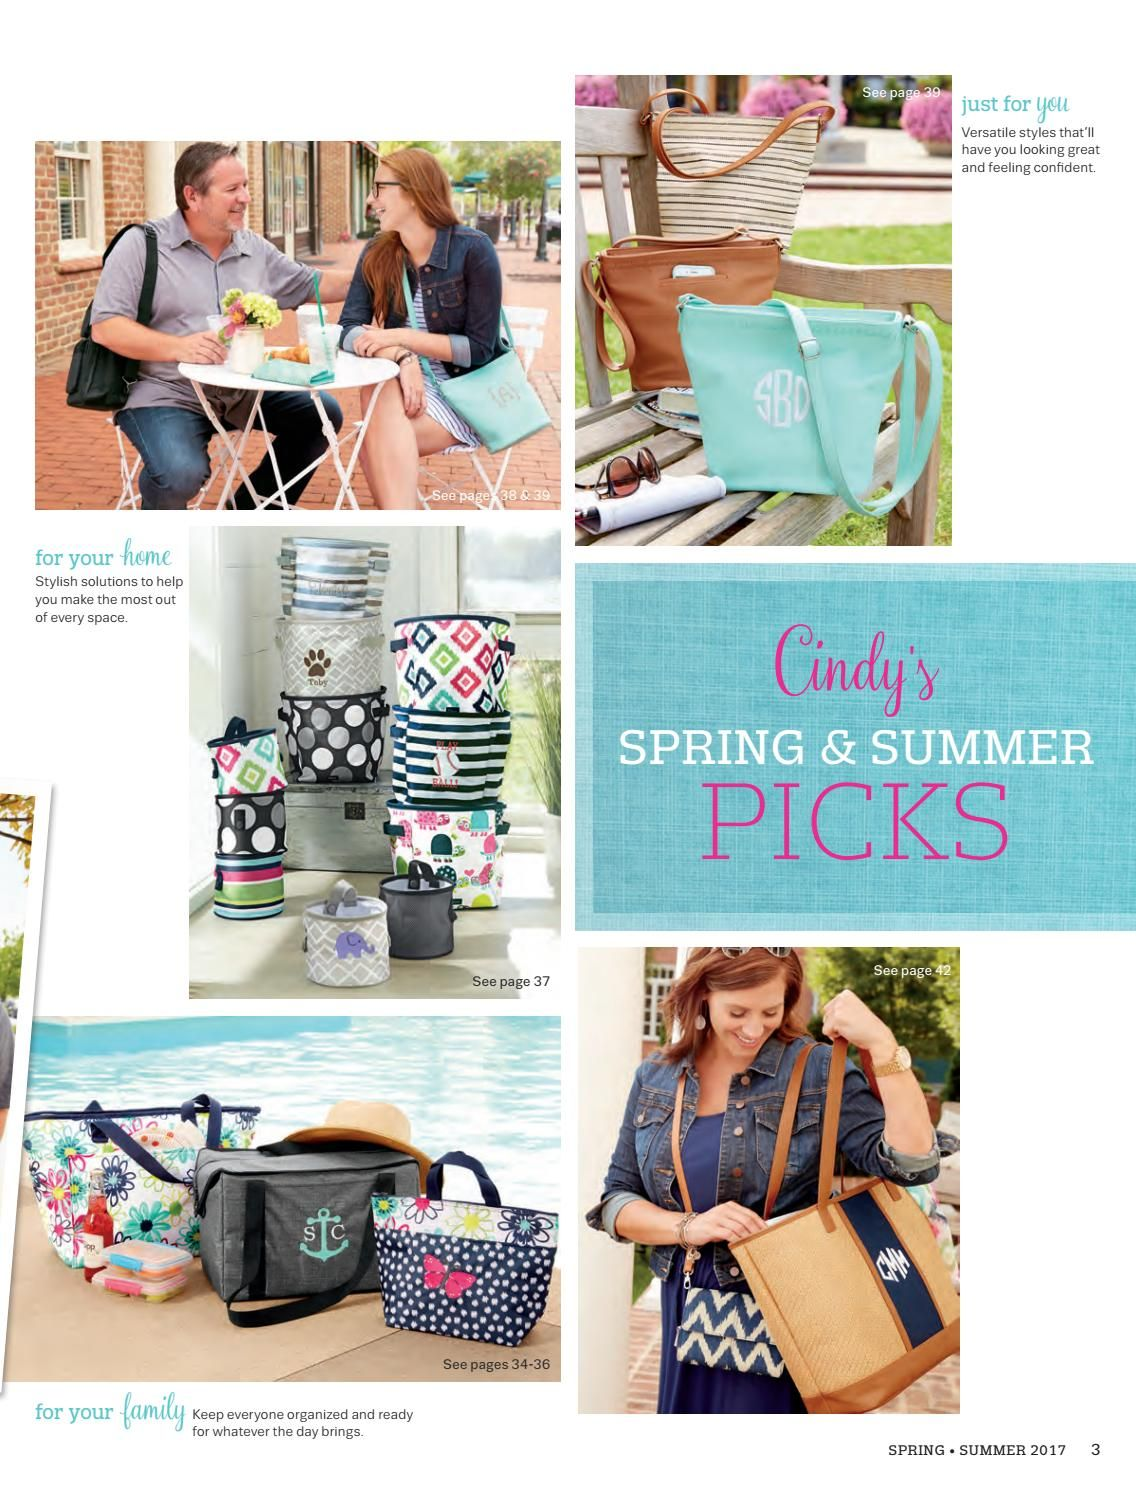 Thirty One Gifts Spring/Summer 2017 Catalog   Thirty one gifts ...